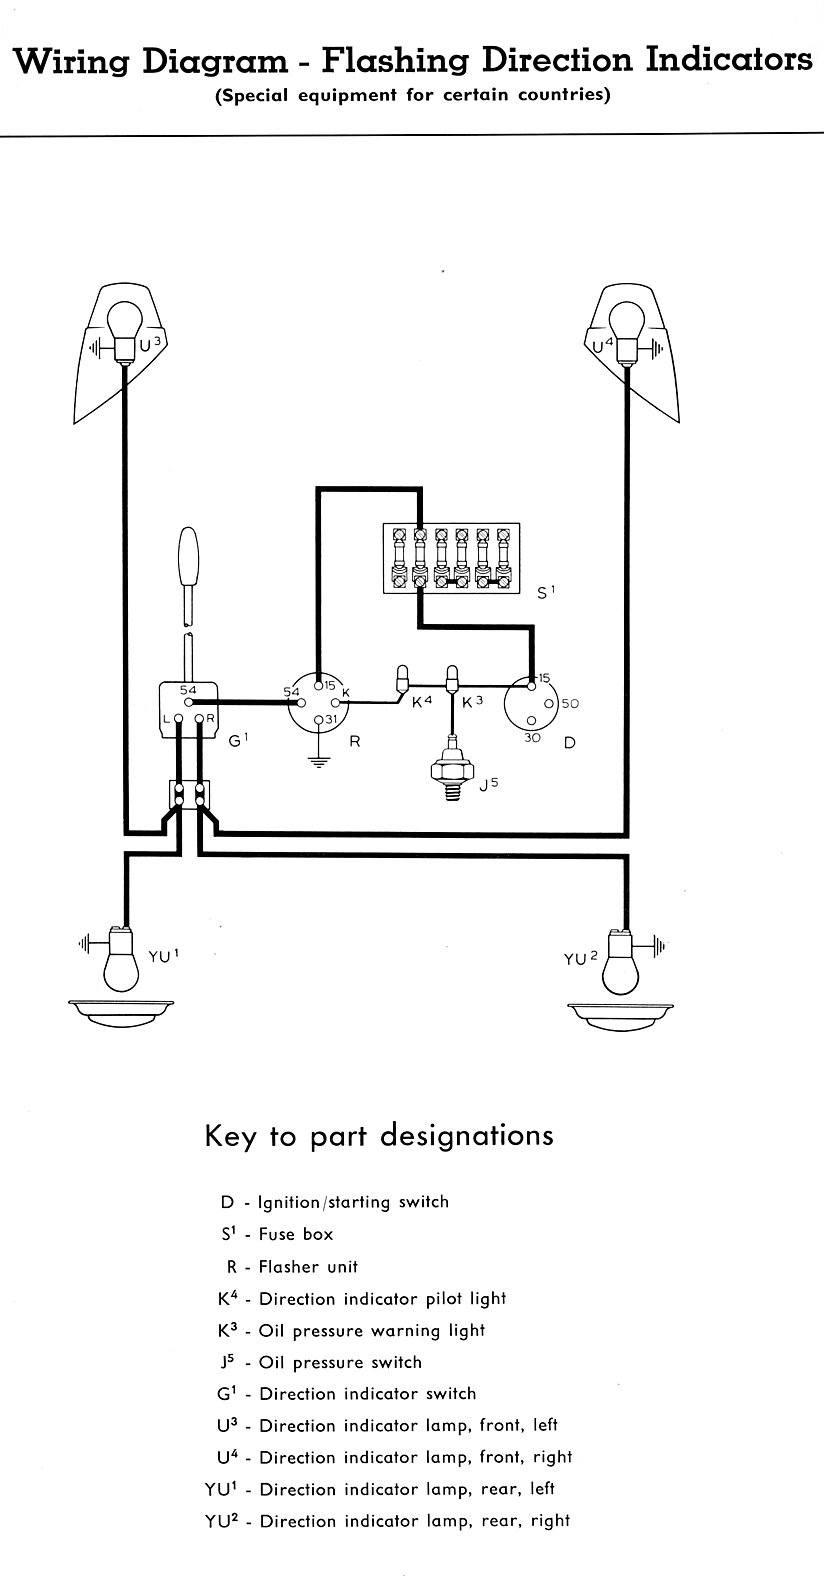 Type 2 Wiring Diagrams Light Switch With Schematic Turn Signal